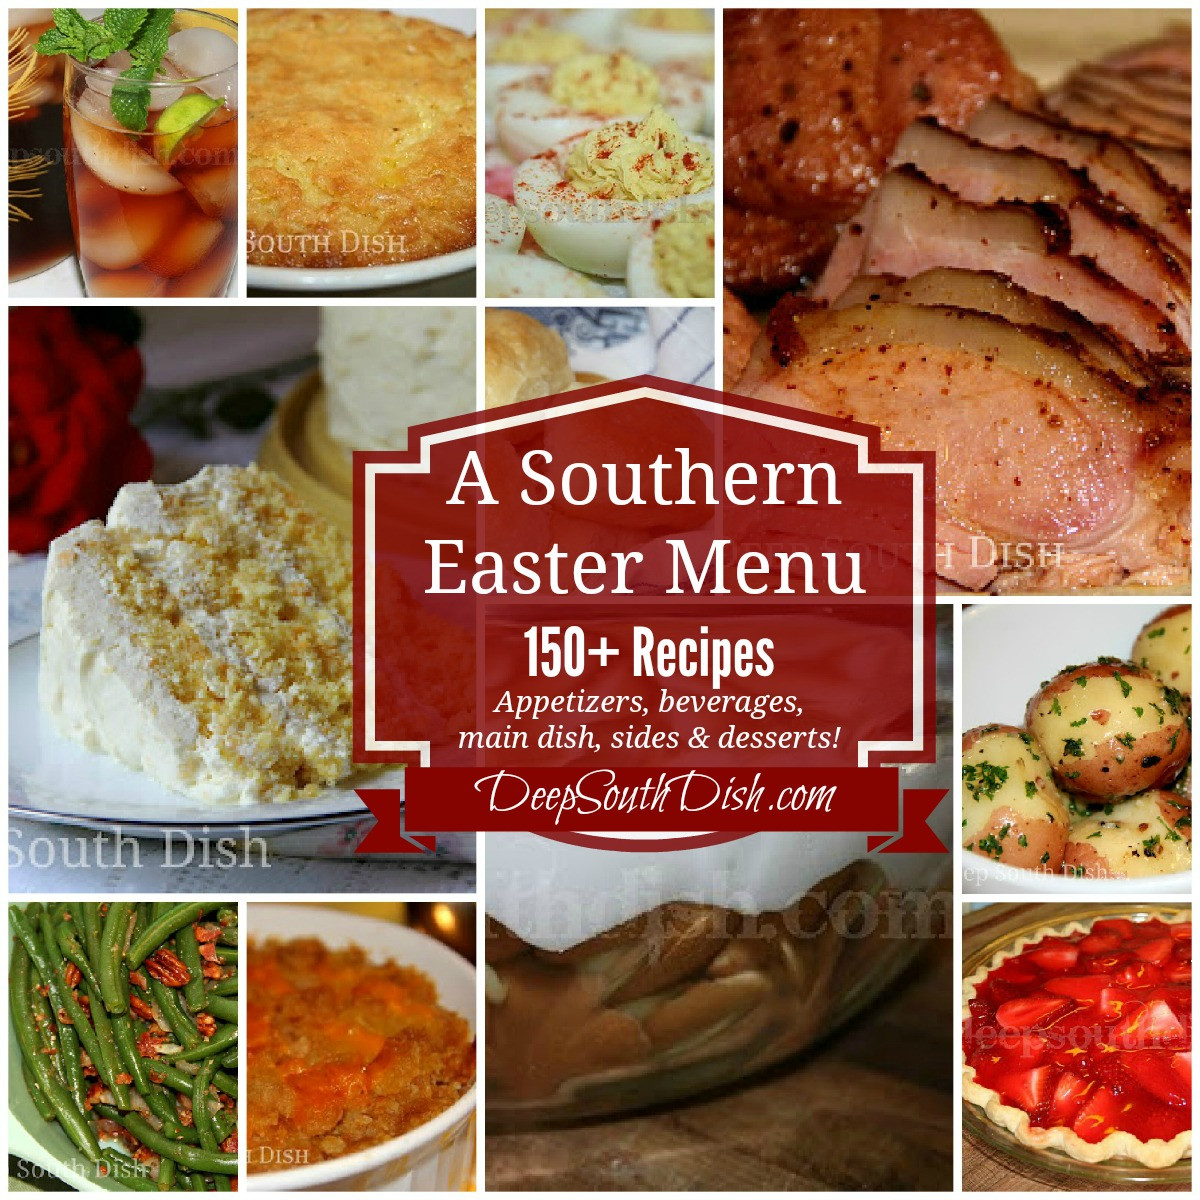 Easter Dinner Menus And Recipes  Deep South Dish Southern Easter Menu Ideas and Recipes